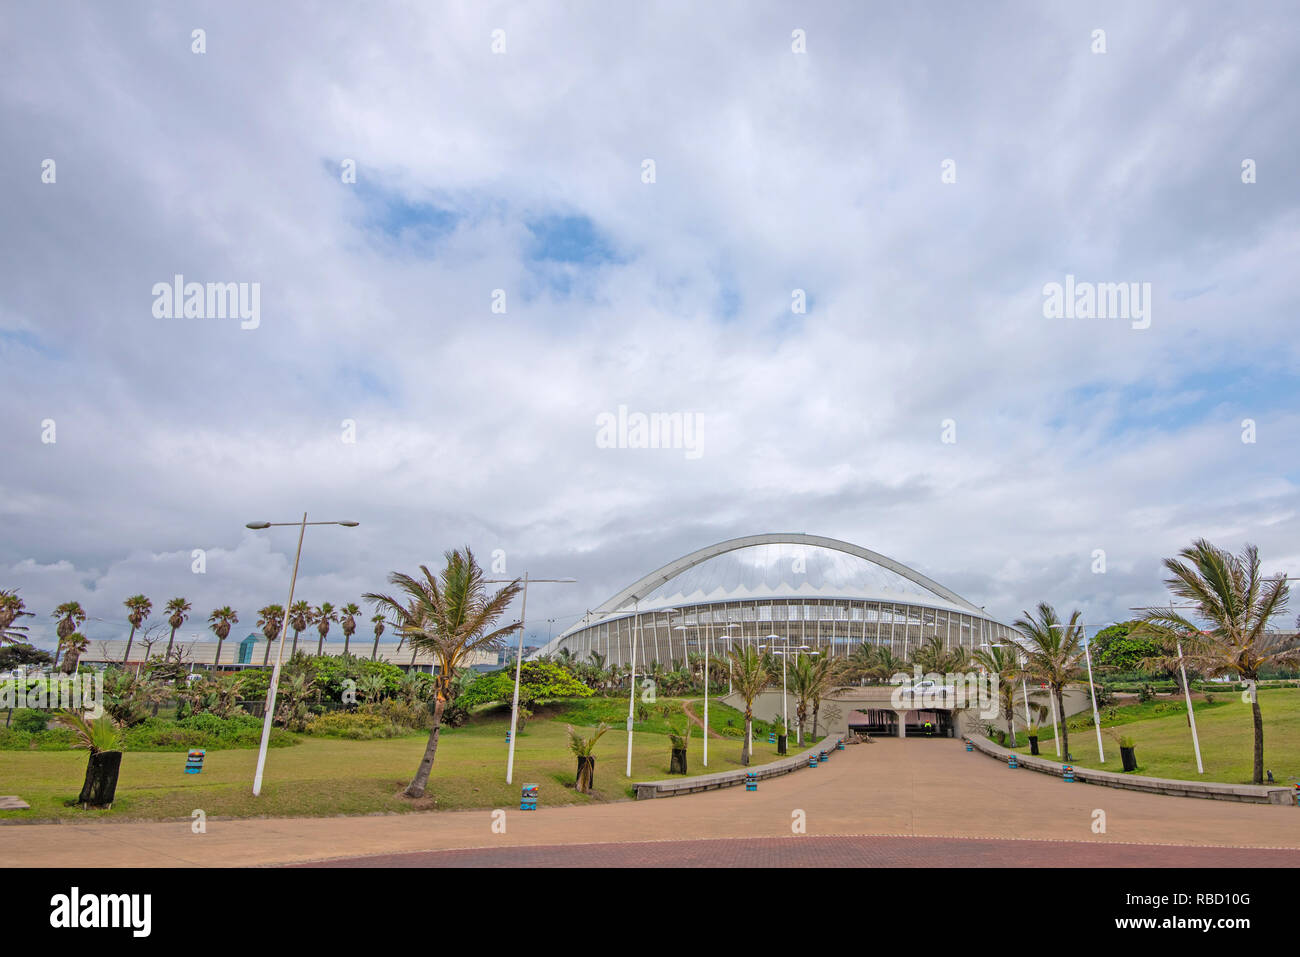 Durban, South Africa. 9th January, 2019. The African National Congress (ANC) 2019 Election Manifesto Launch is set to take place at Moses Mabhida Stadium in Durban on Saturday, 12th January, 2019. The ANC is South Africa's ruling party, but it faces major challenges from opposition parties the Democratic Alliance (DA) and the Economic Freedom Fighters (EFF). Jonathan Oberholster/Alamy Live News - Stock Image